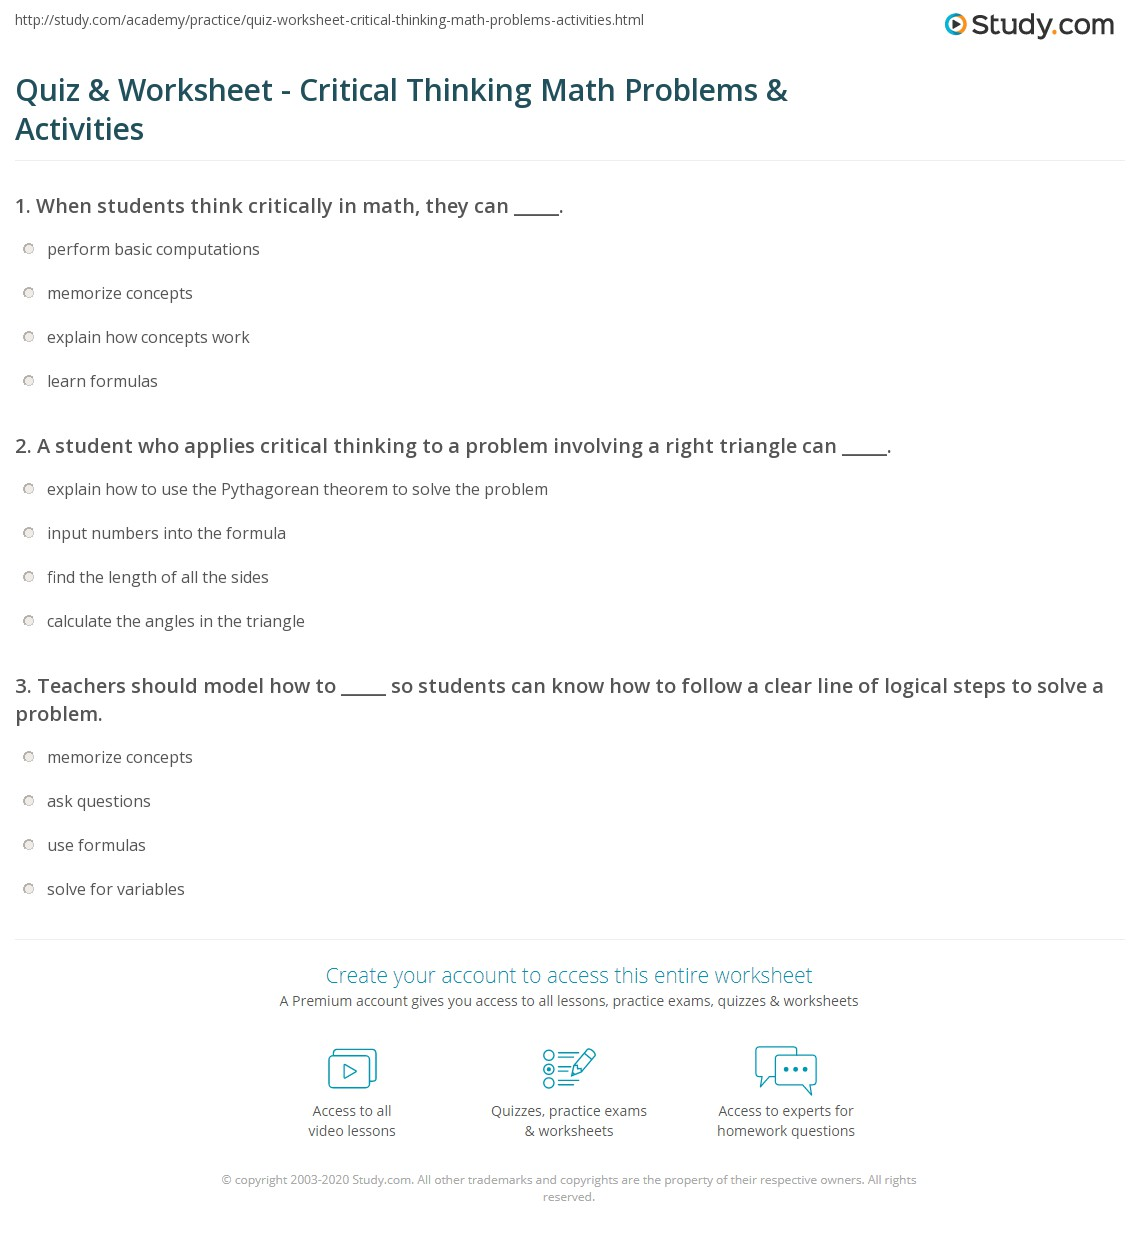 Quiz Worksheet Critical Thinking Math Problems Activities